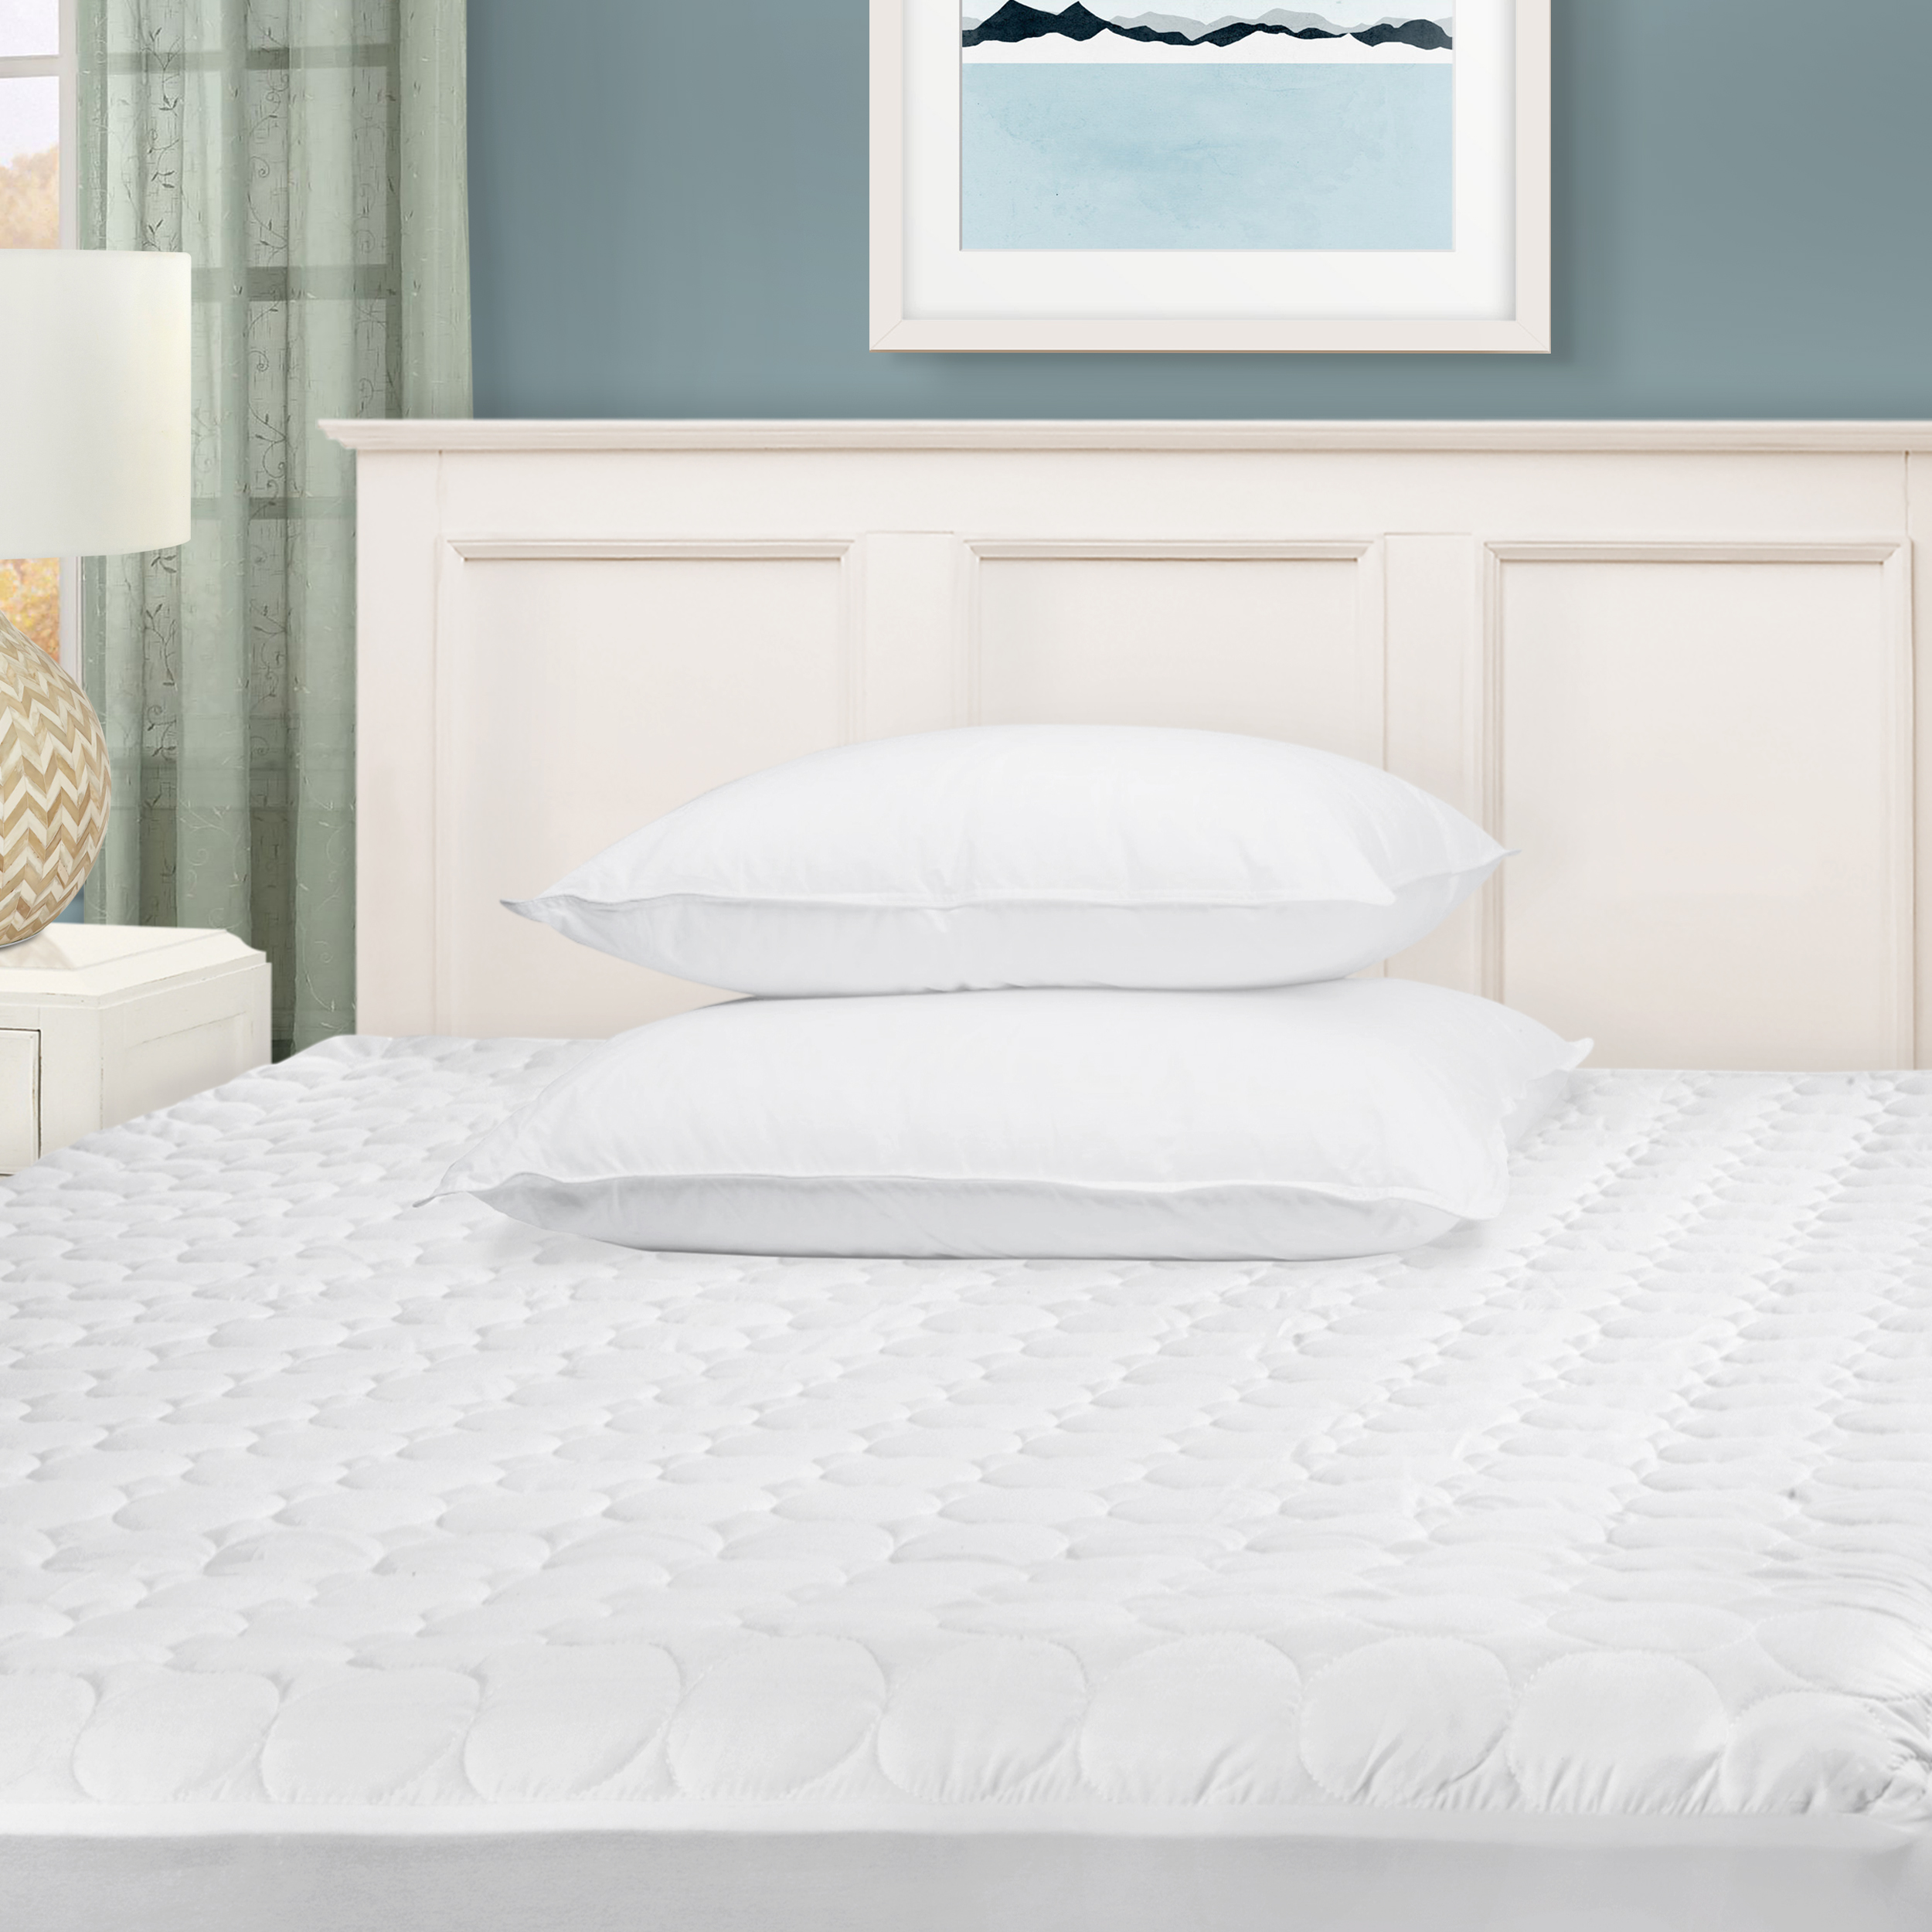 Superior Quilted White, Hypoallergenic, Fully Elasticated Deep Pockets, Microfiber Mattress Pad